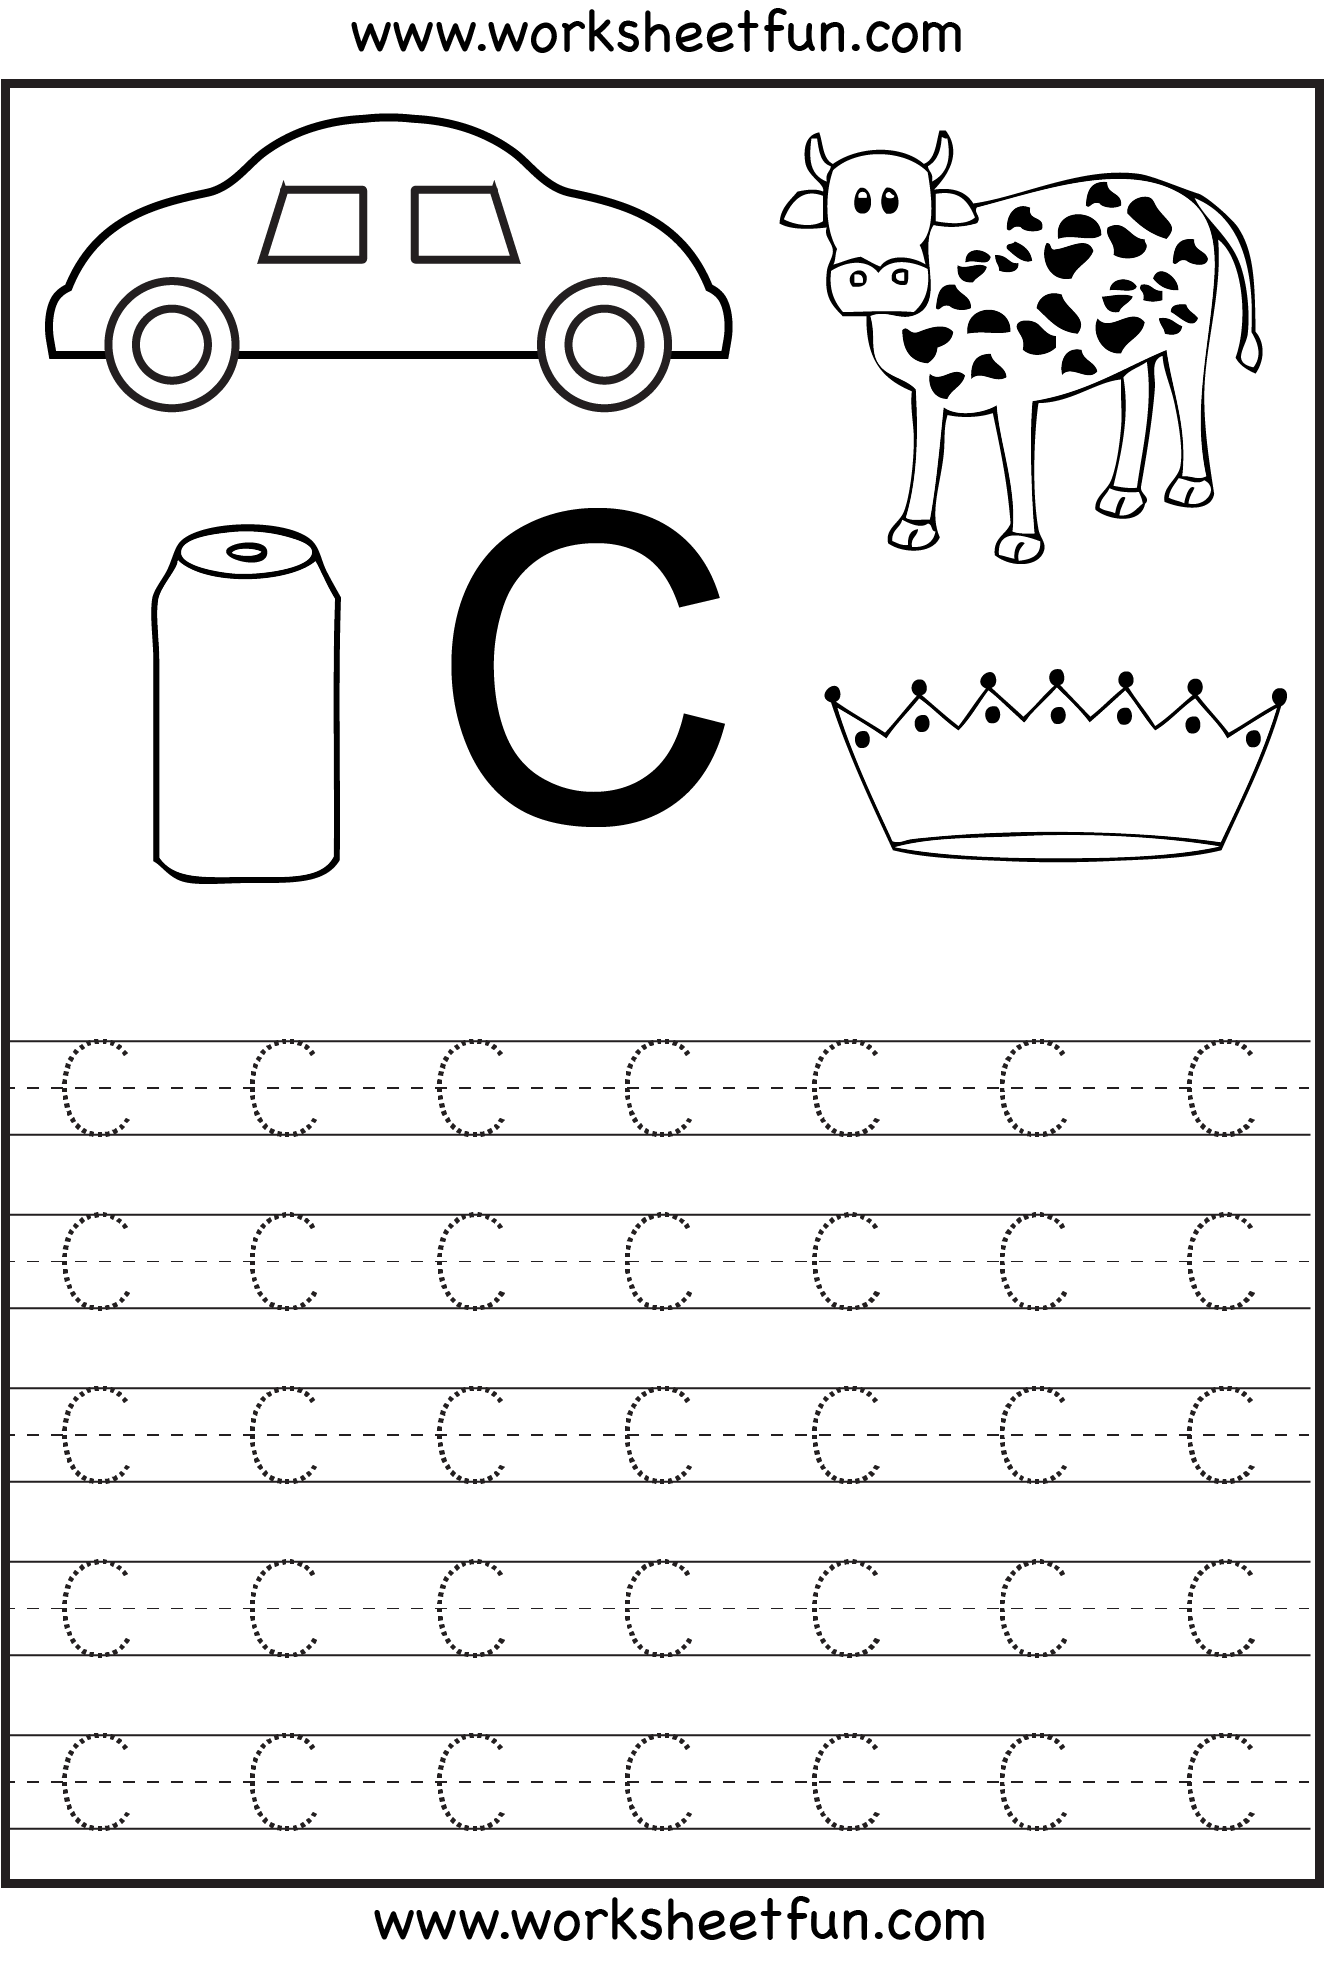 letter tracing worksheets for kindergarten capital letters alphabet tracing 26 worksheets free printable worksheets